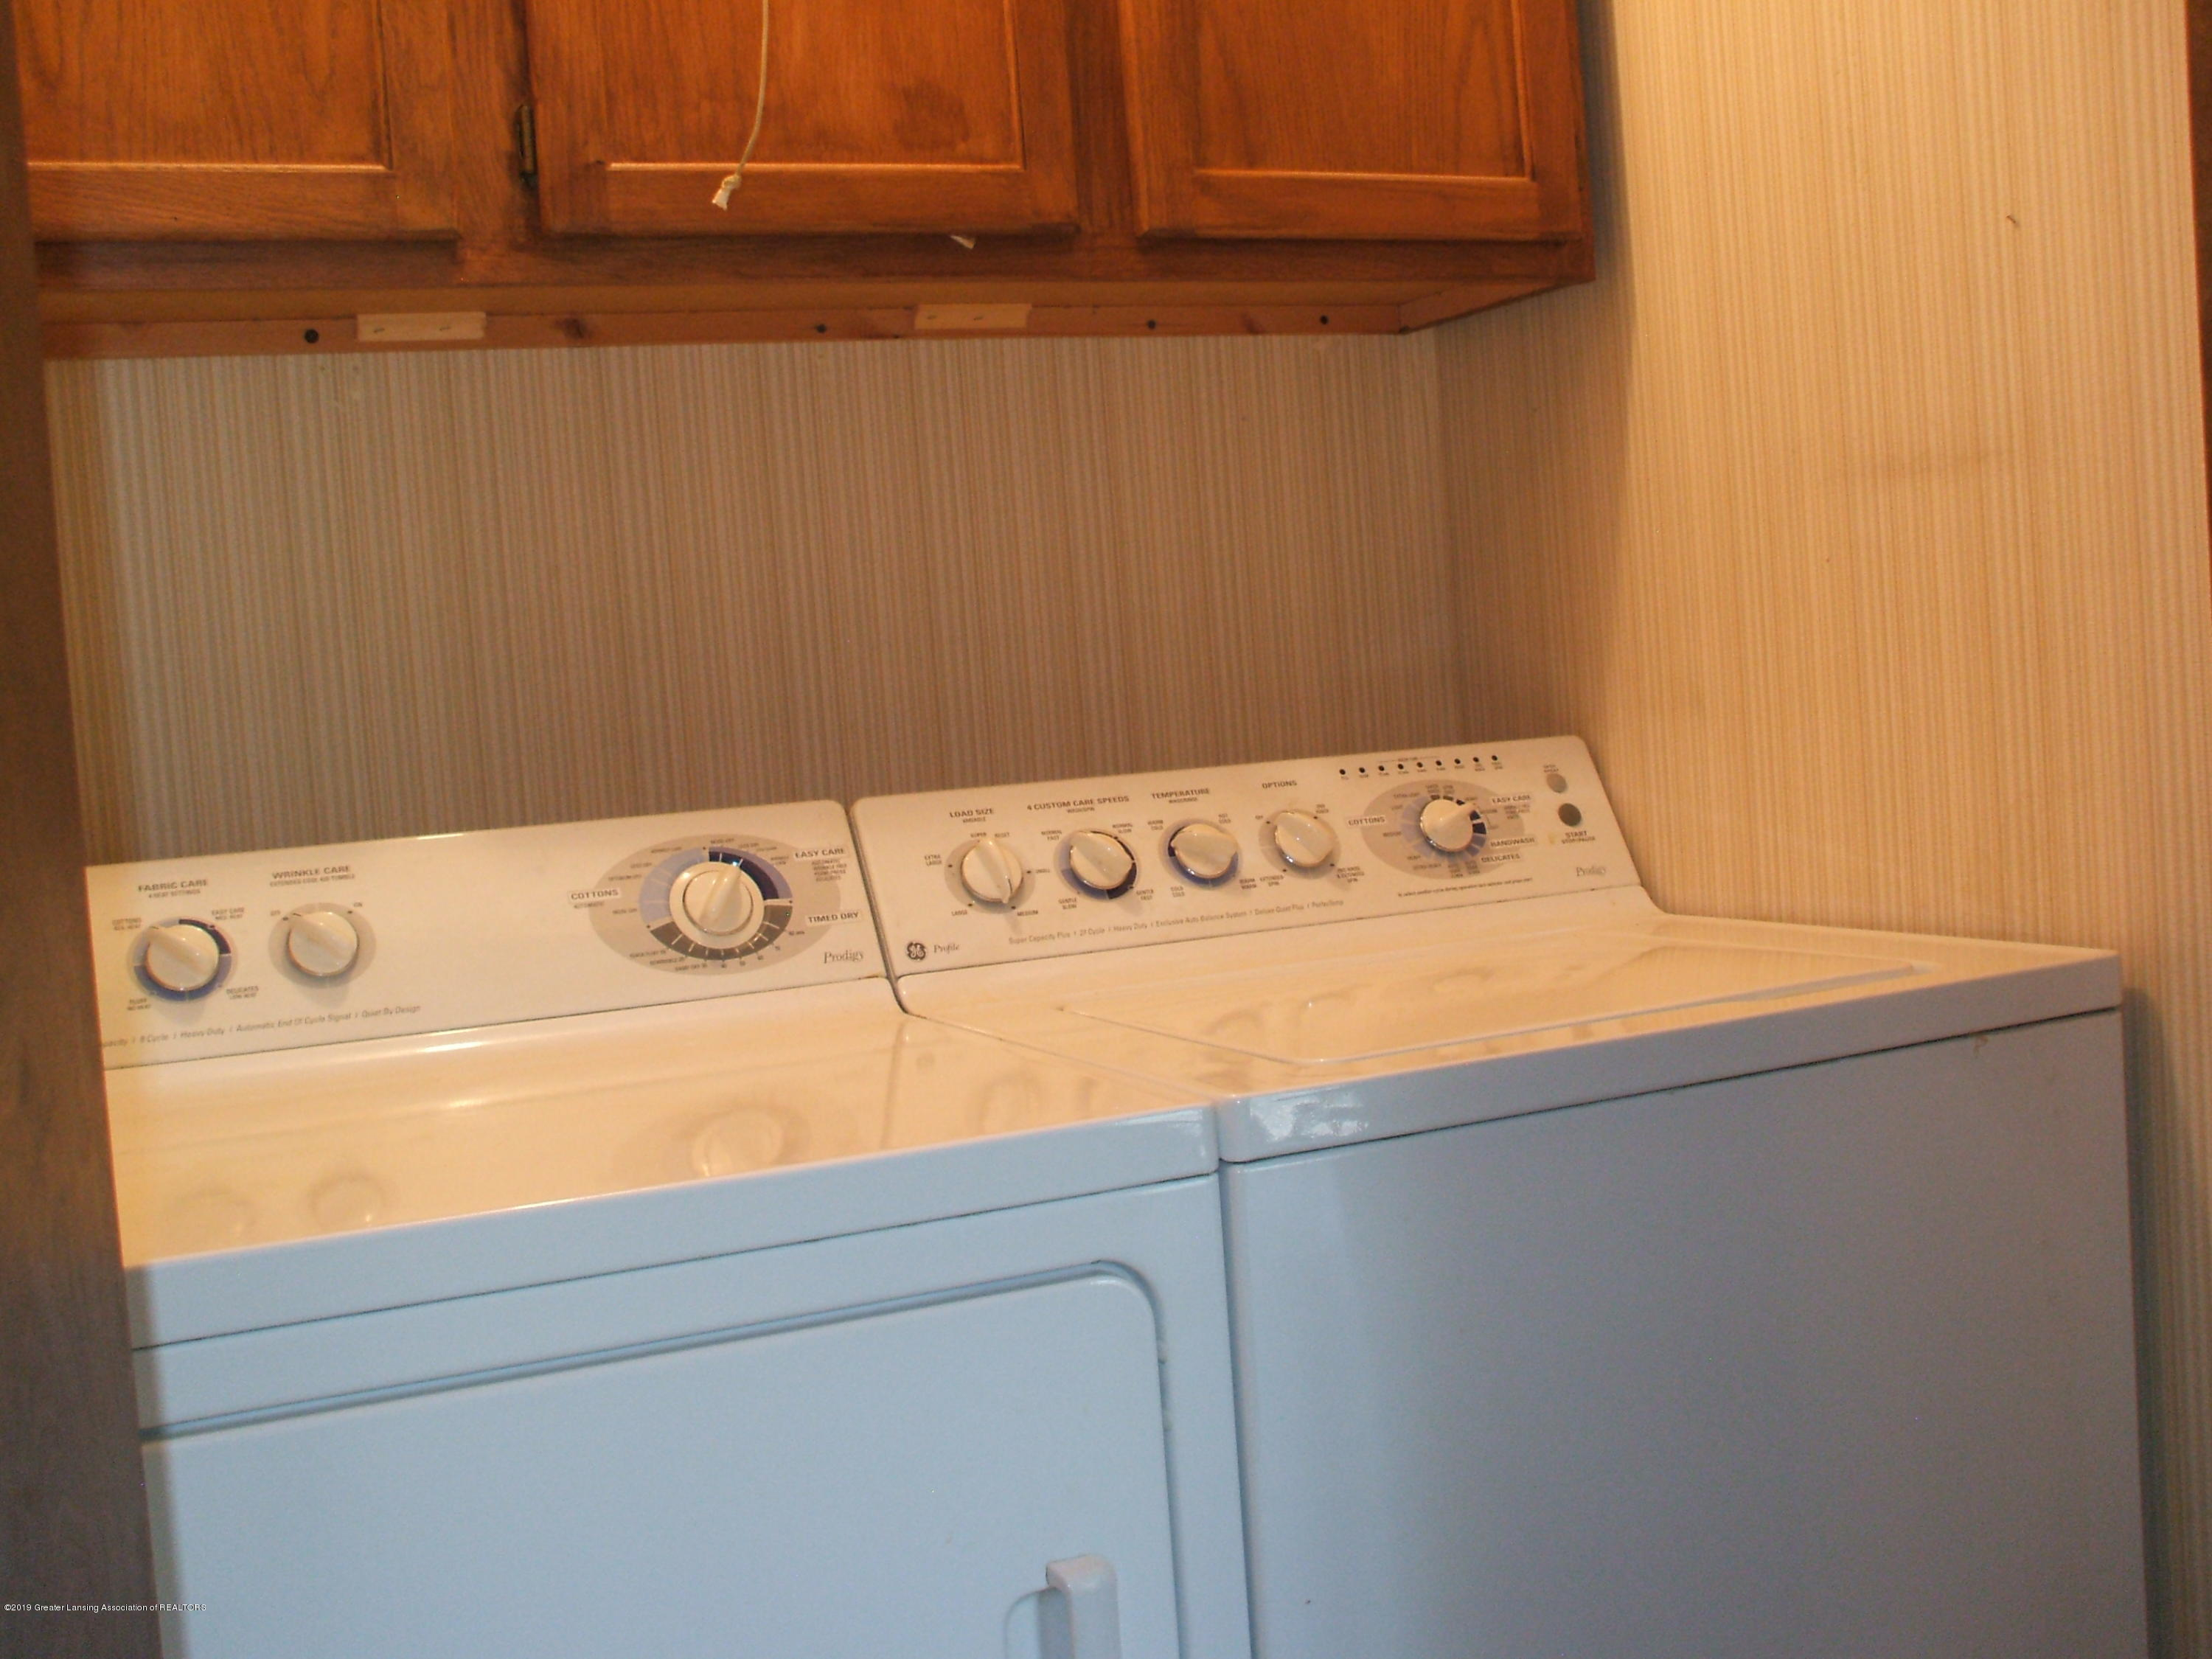 807 W McConnell St - Laundry - 31